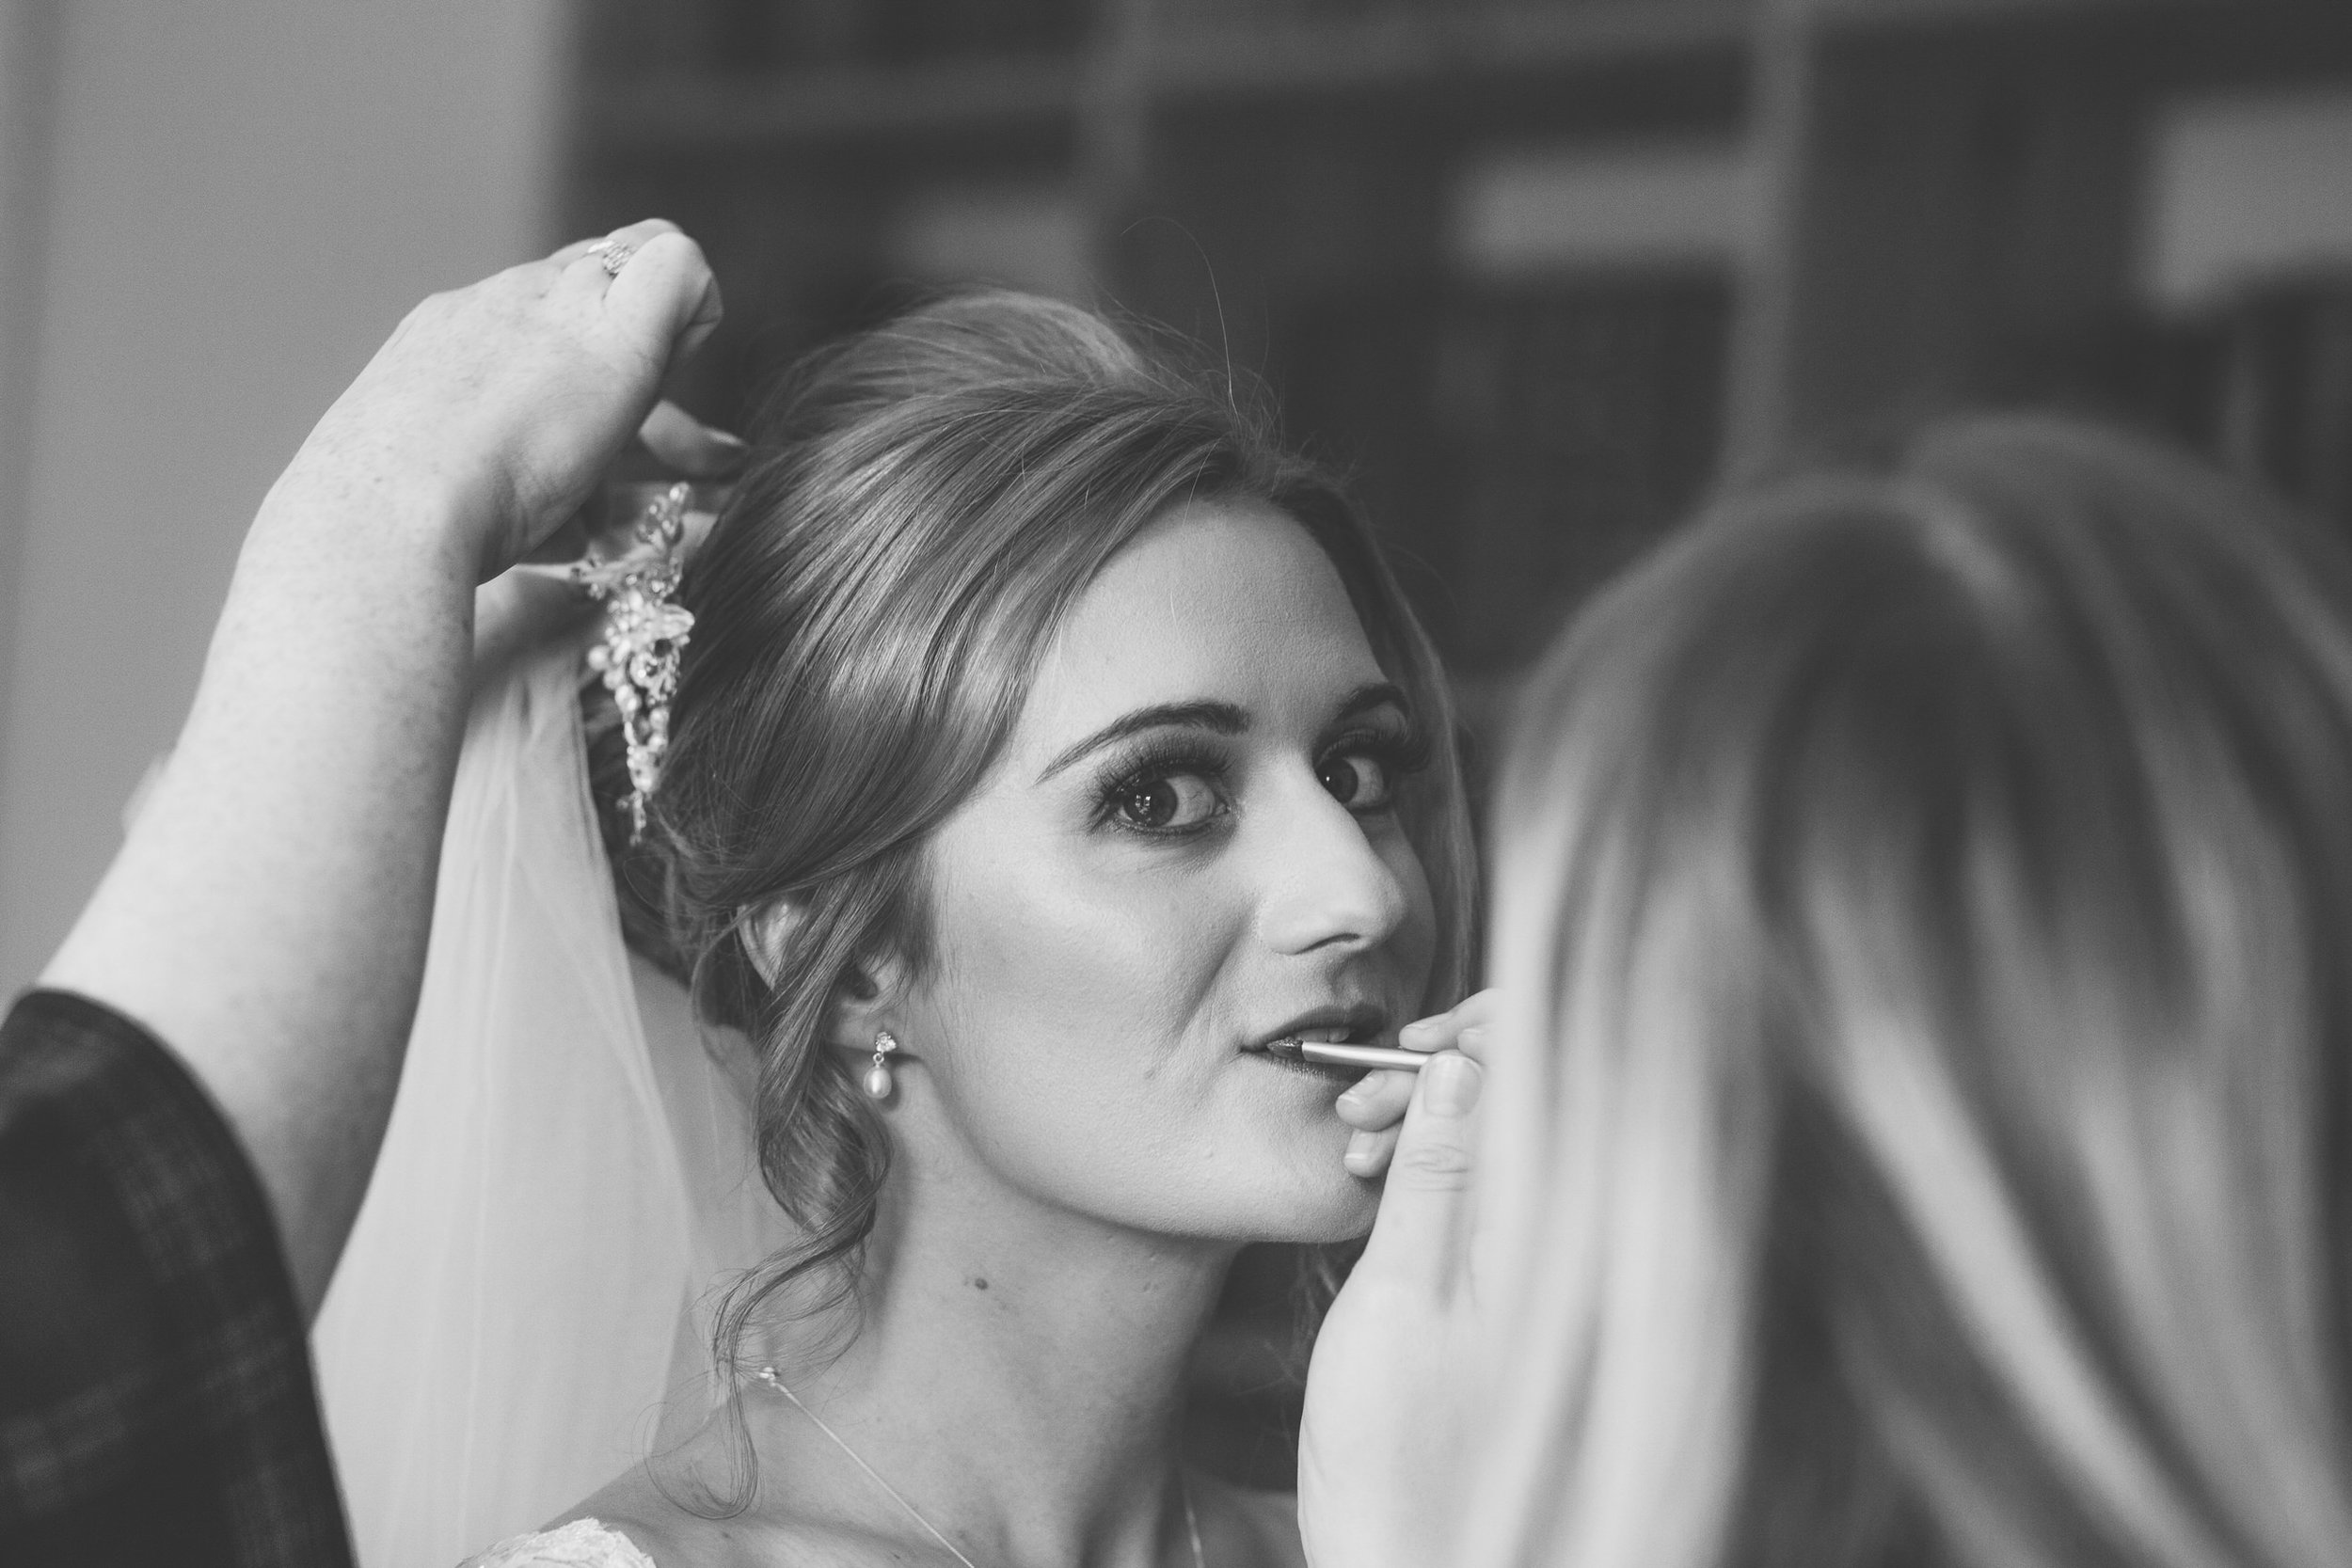 logie country house, Tiffany Dawson make up artist, hair by Marianne gibb, logie country house wedding